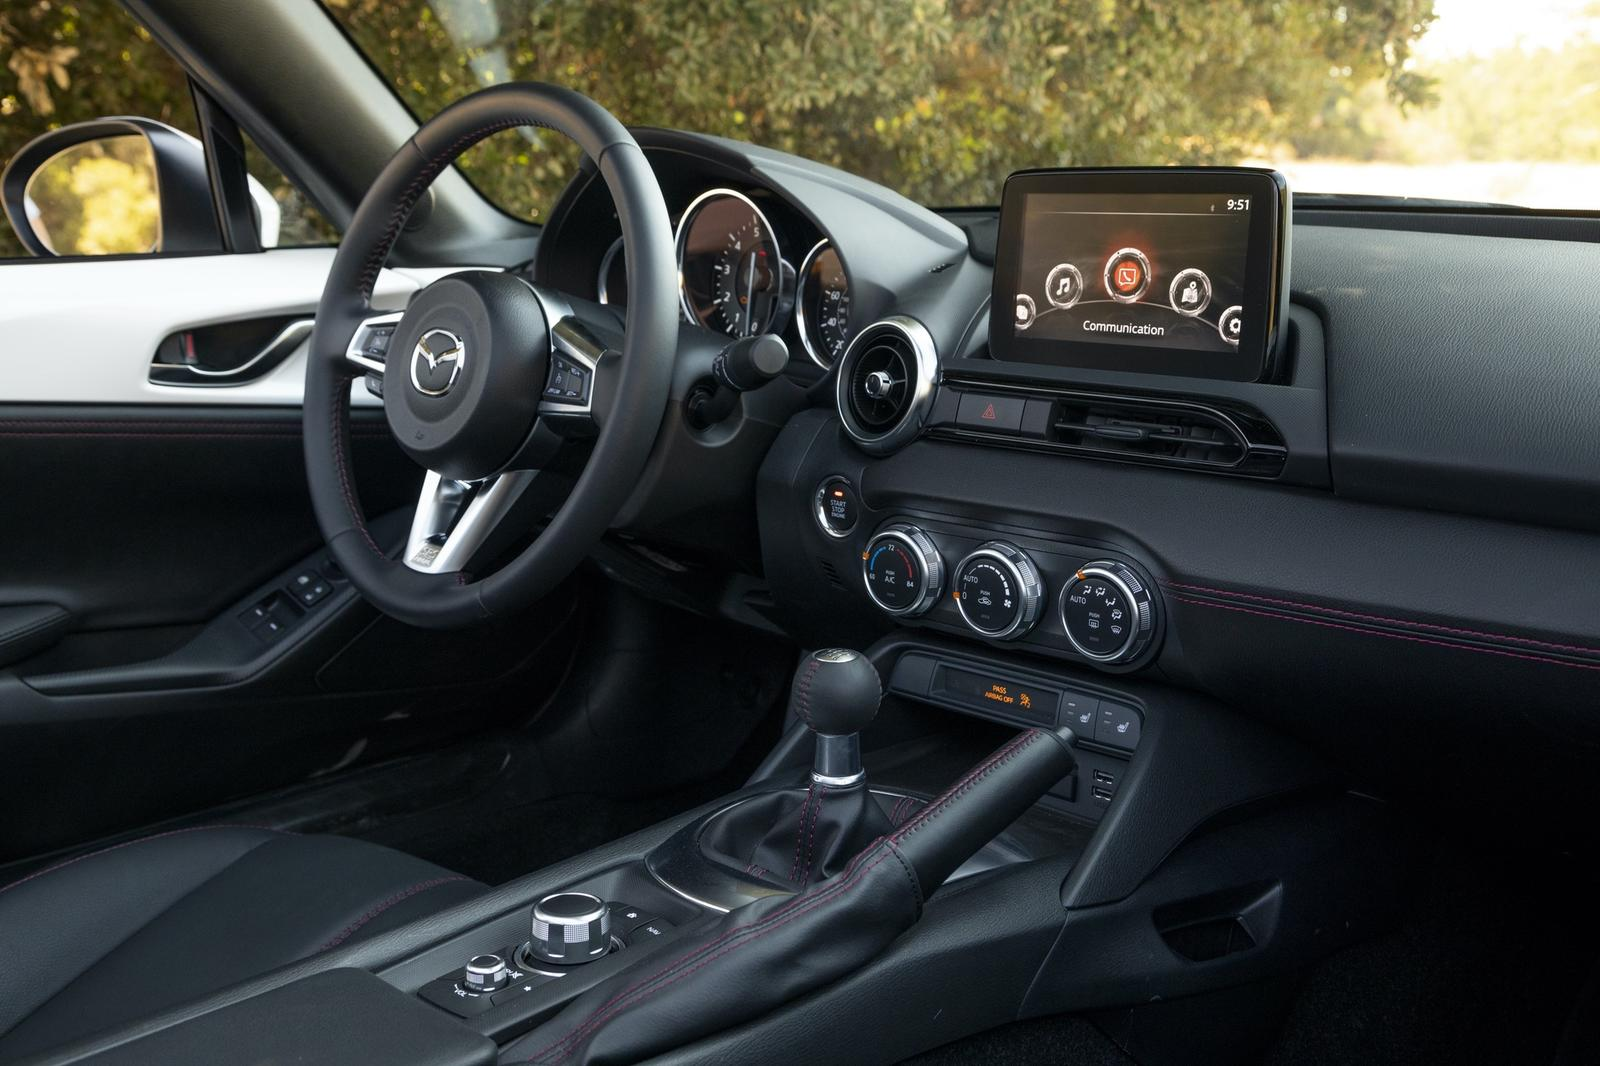 2019 Mazda MX-5 First Drive: The Classic Roadster Changes in